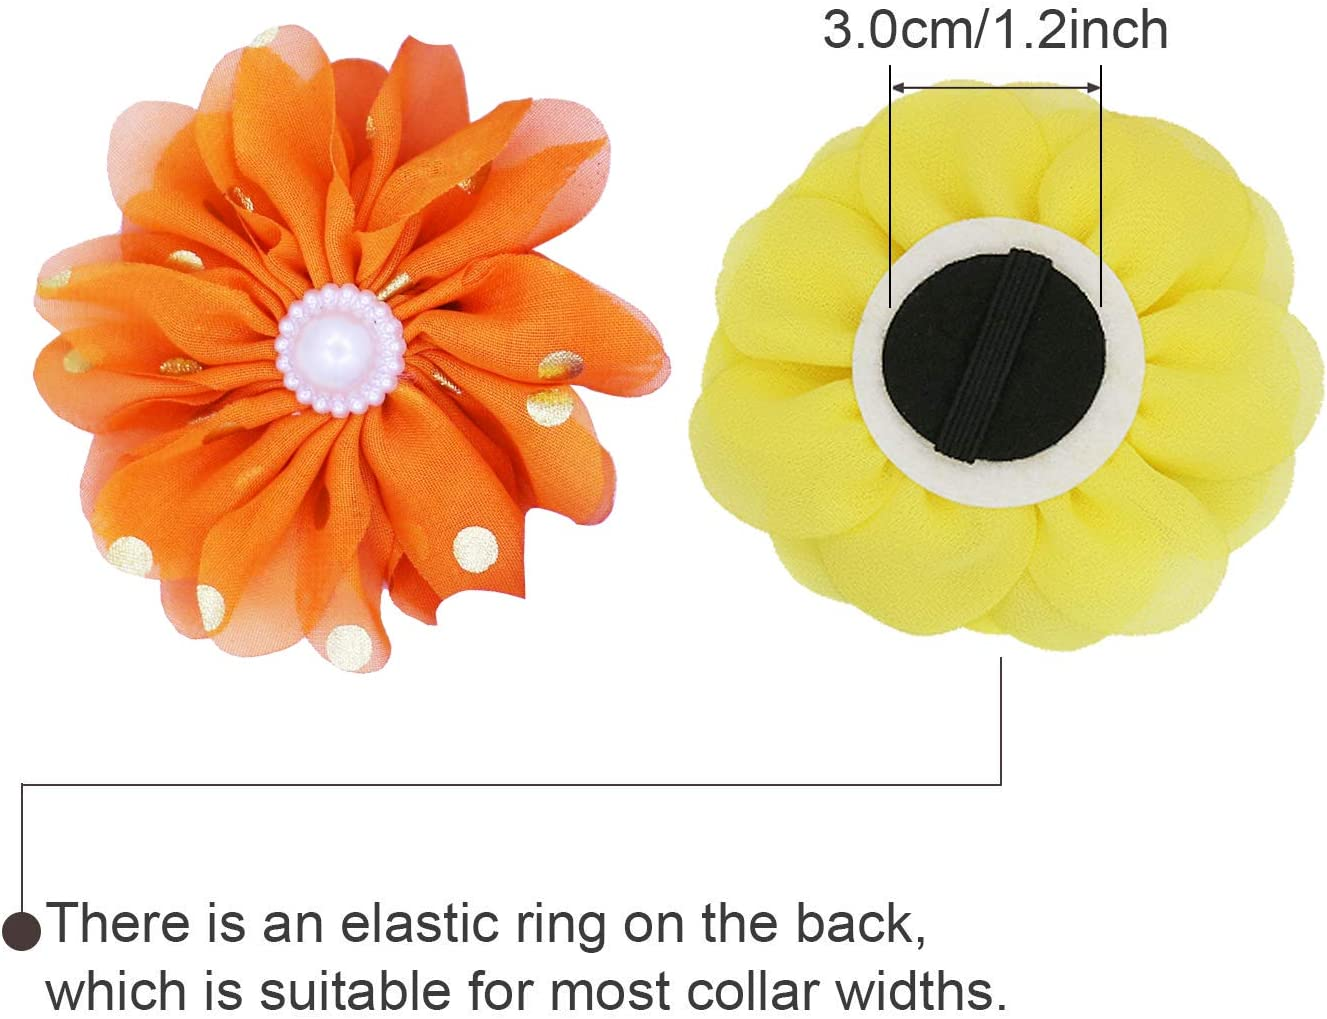 JpGdn 10pcs Dog Collar Charms for Small and Medium Puppy Doggy Animals Sliding Collar Bow Ties Grooming Accessories Daisy Collar Flowers Attachment